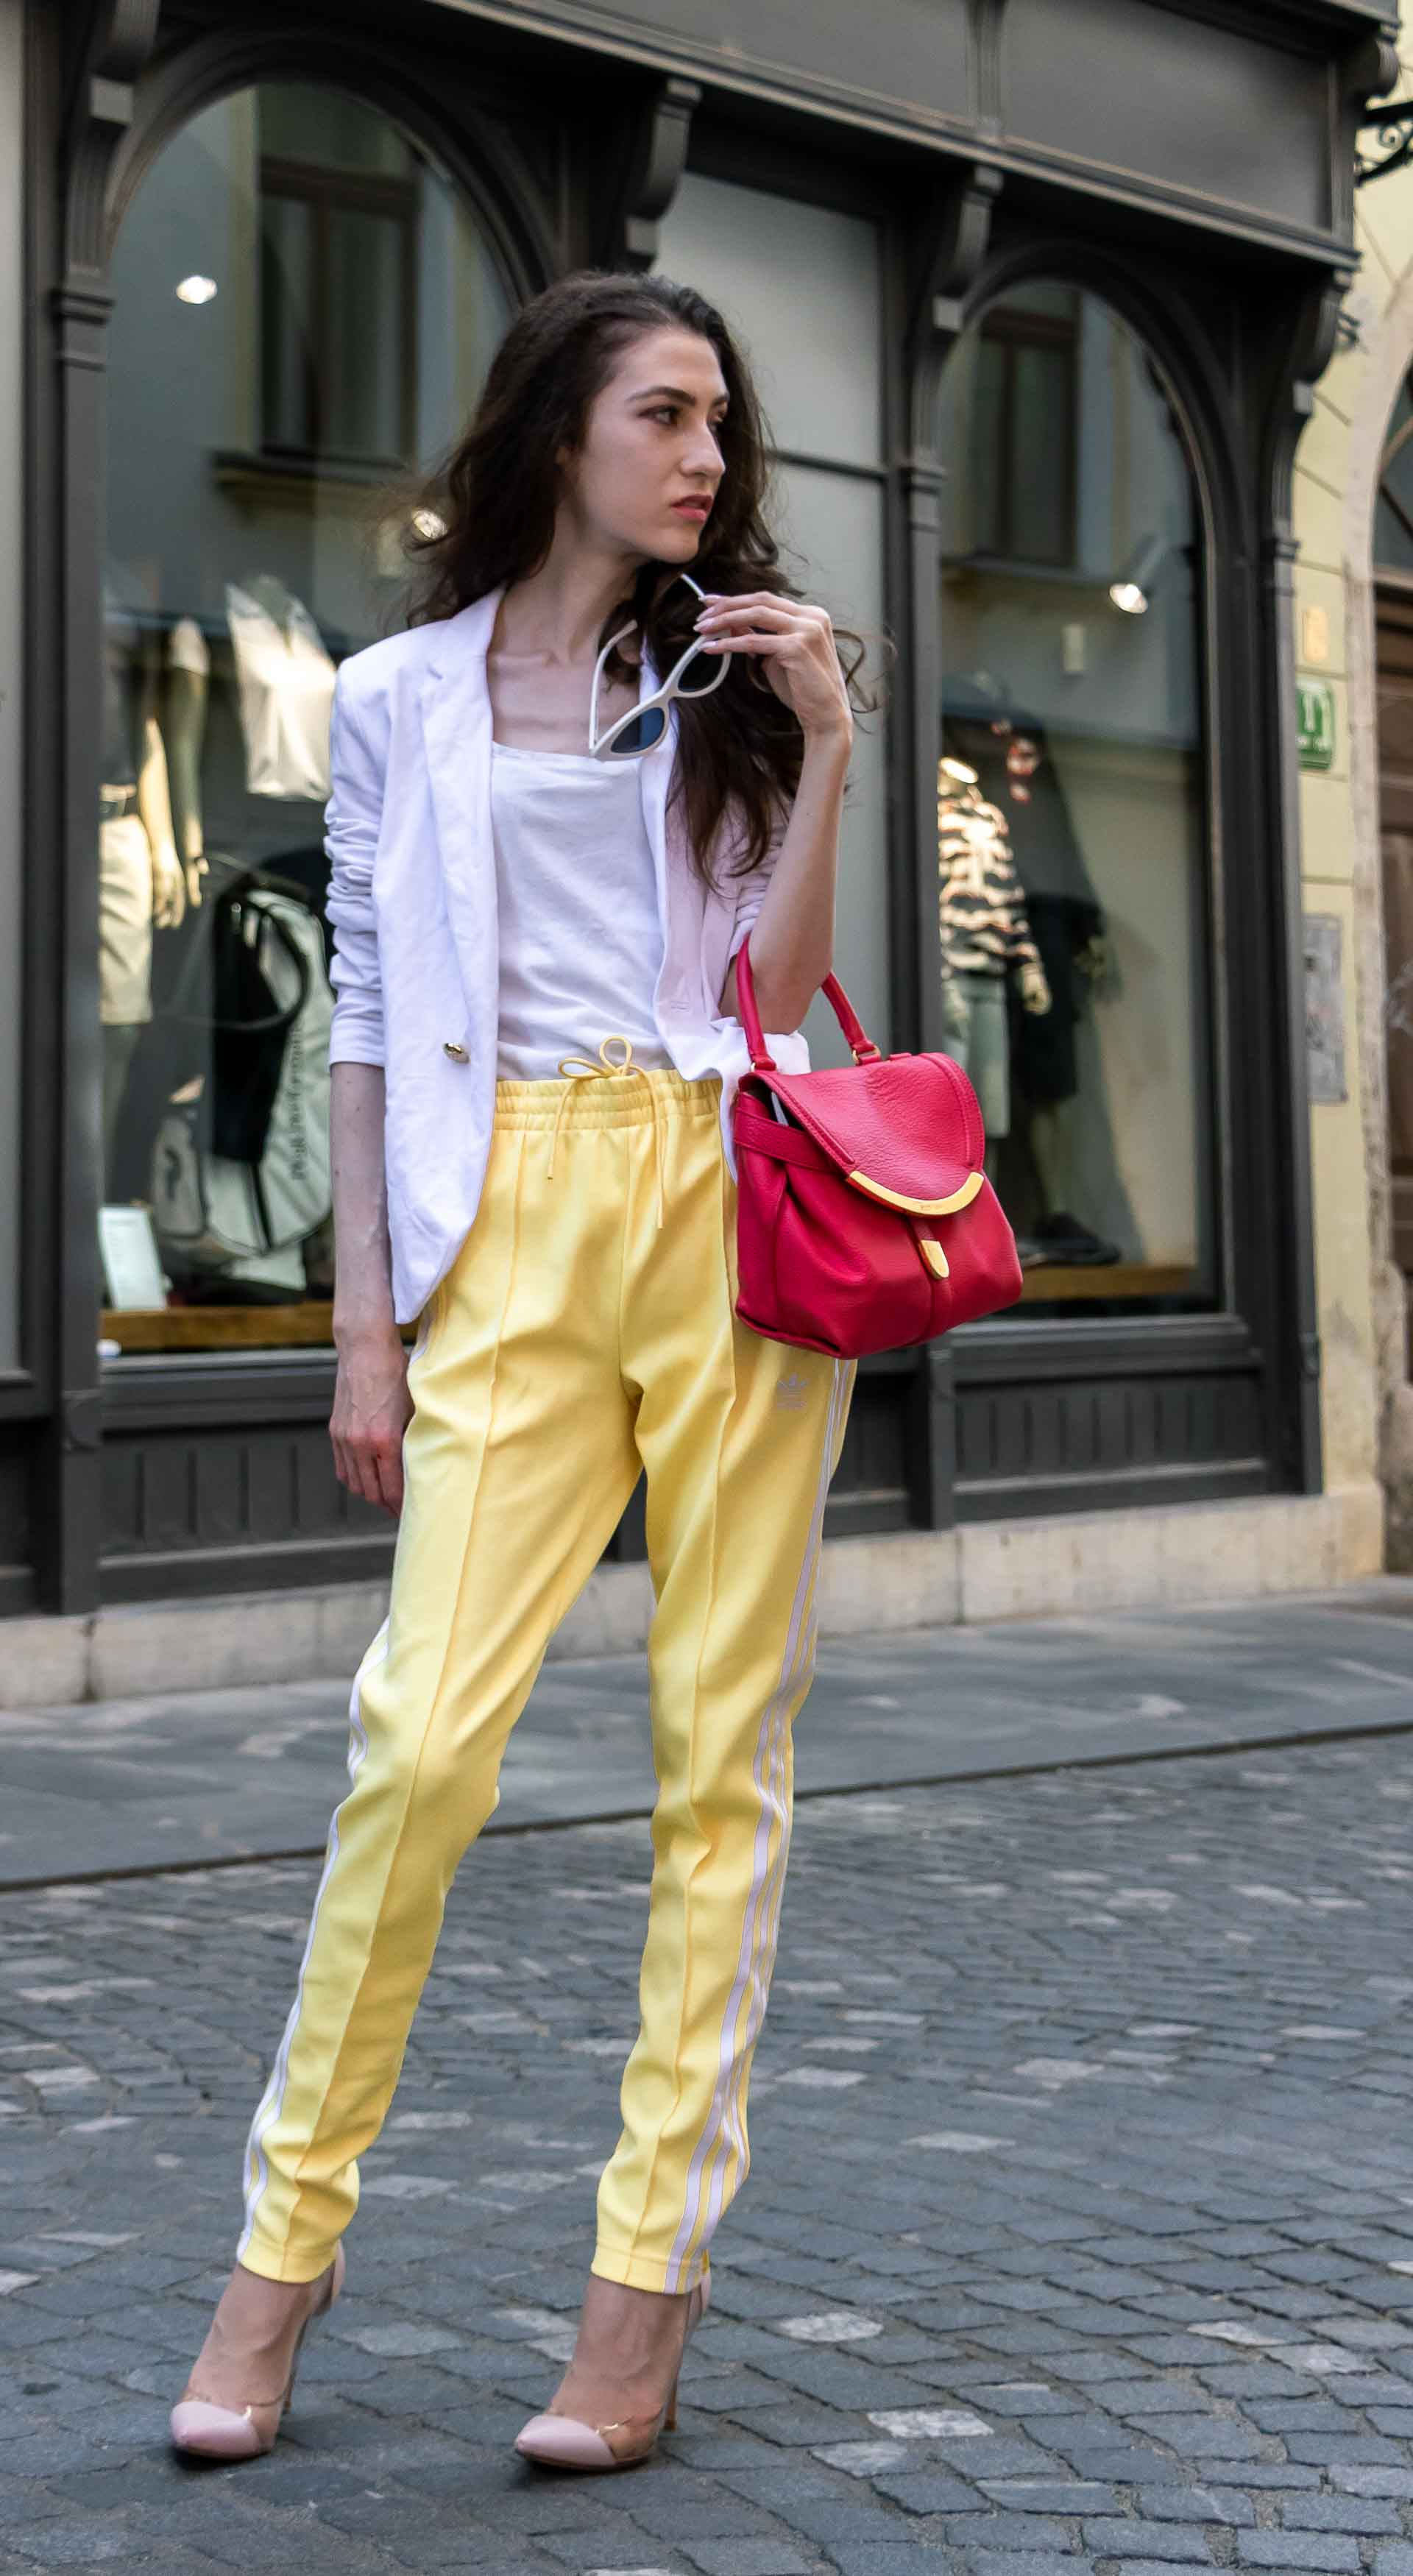 Veronika Lipar Fashion Blogger of Brunette from Wall Street dressed in chic casual white blazer, white H&M t-shirt, yellow Addidas track pants, See by Chloé pink top handle bag, Adam Selman x Le Specs white cat eye Lolita sunglasses, pink blush Gianvito Rossi plexi pumps on the street